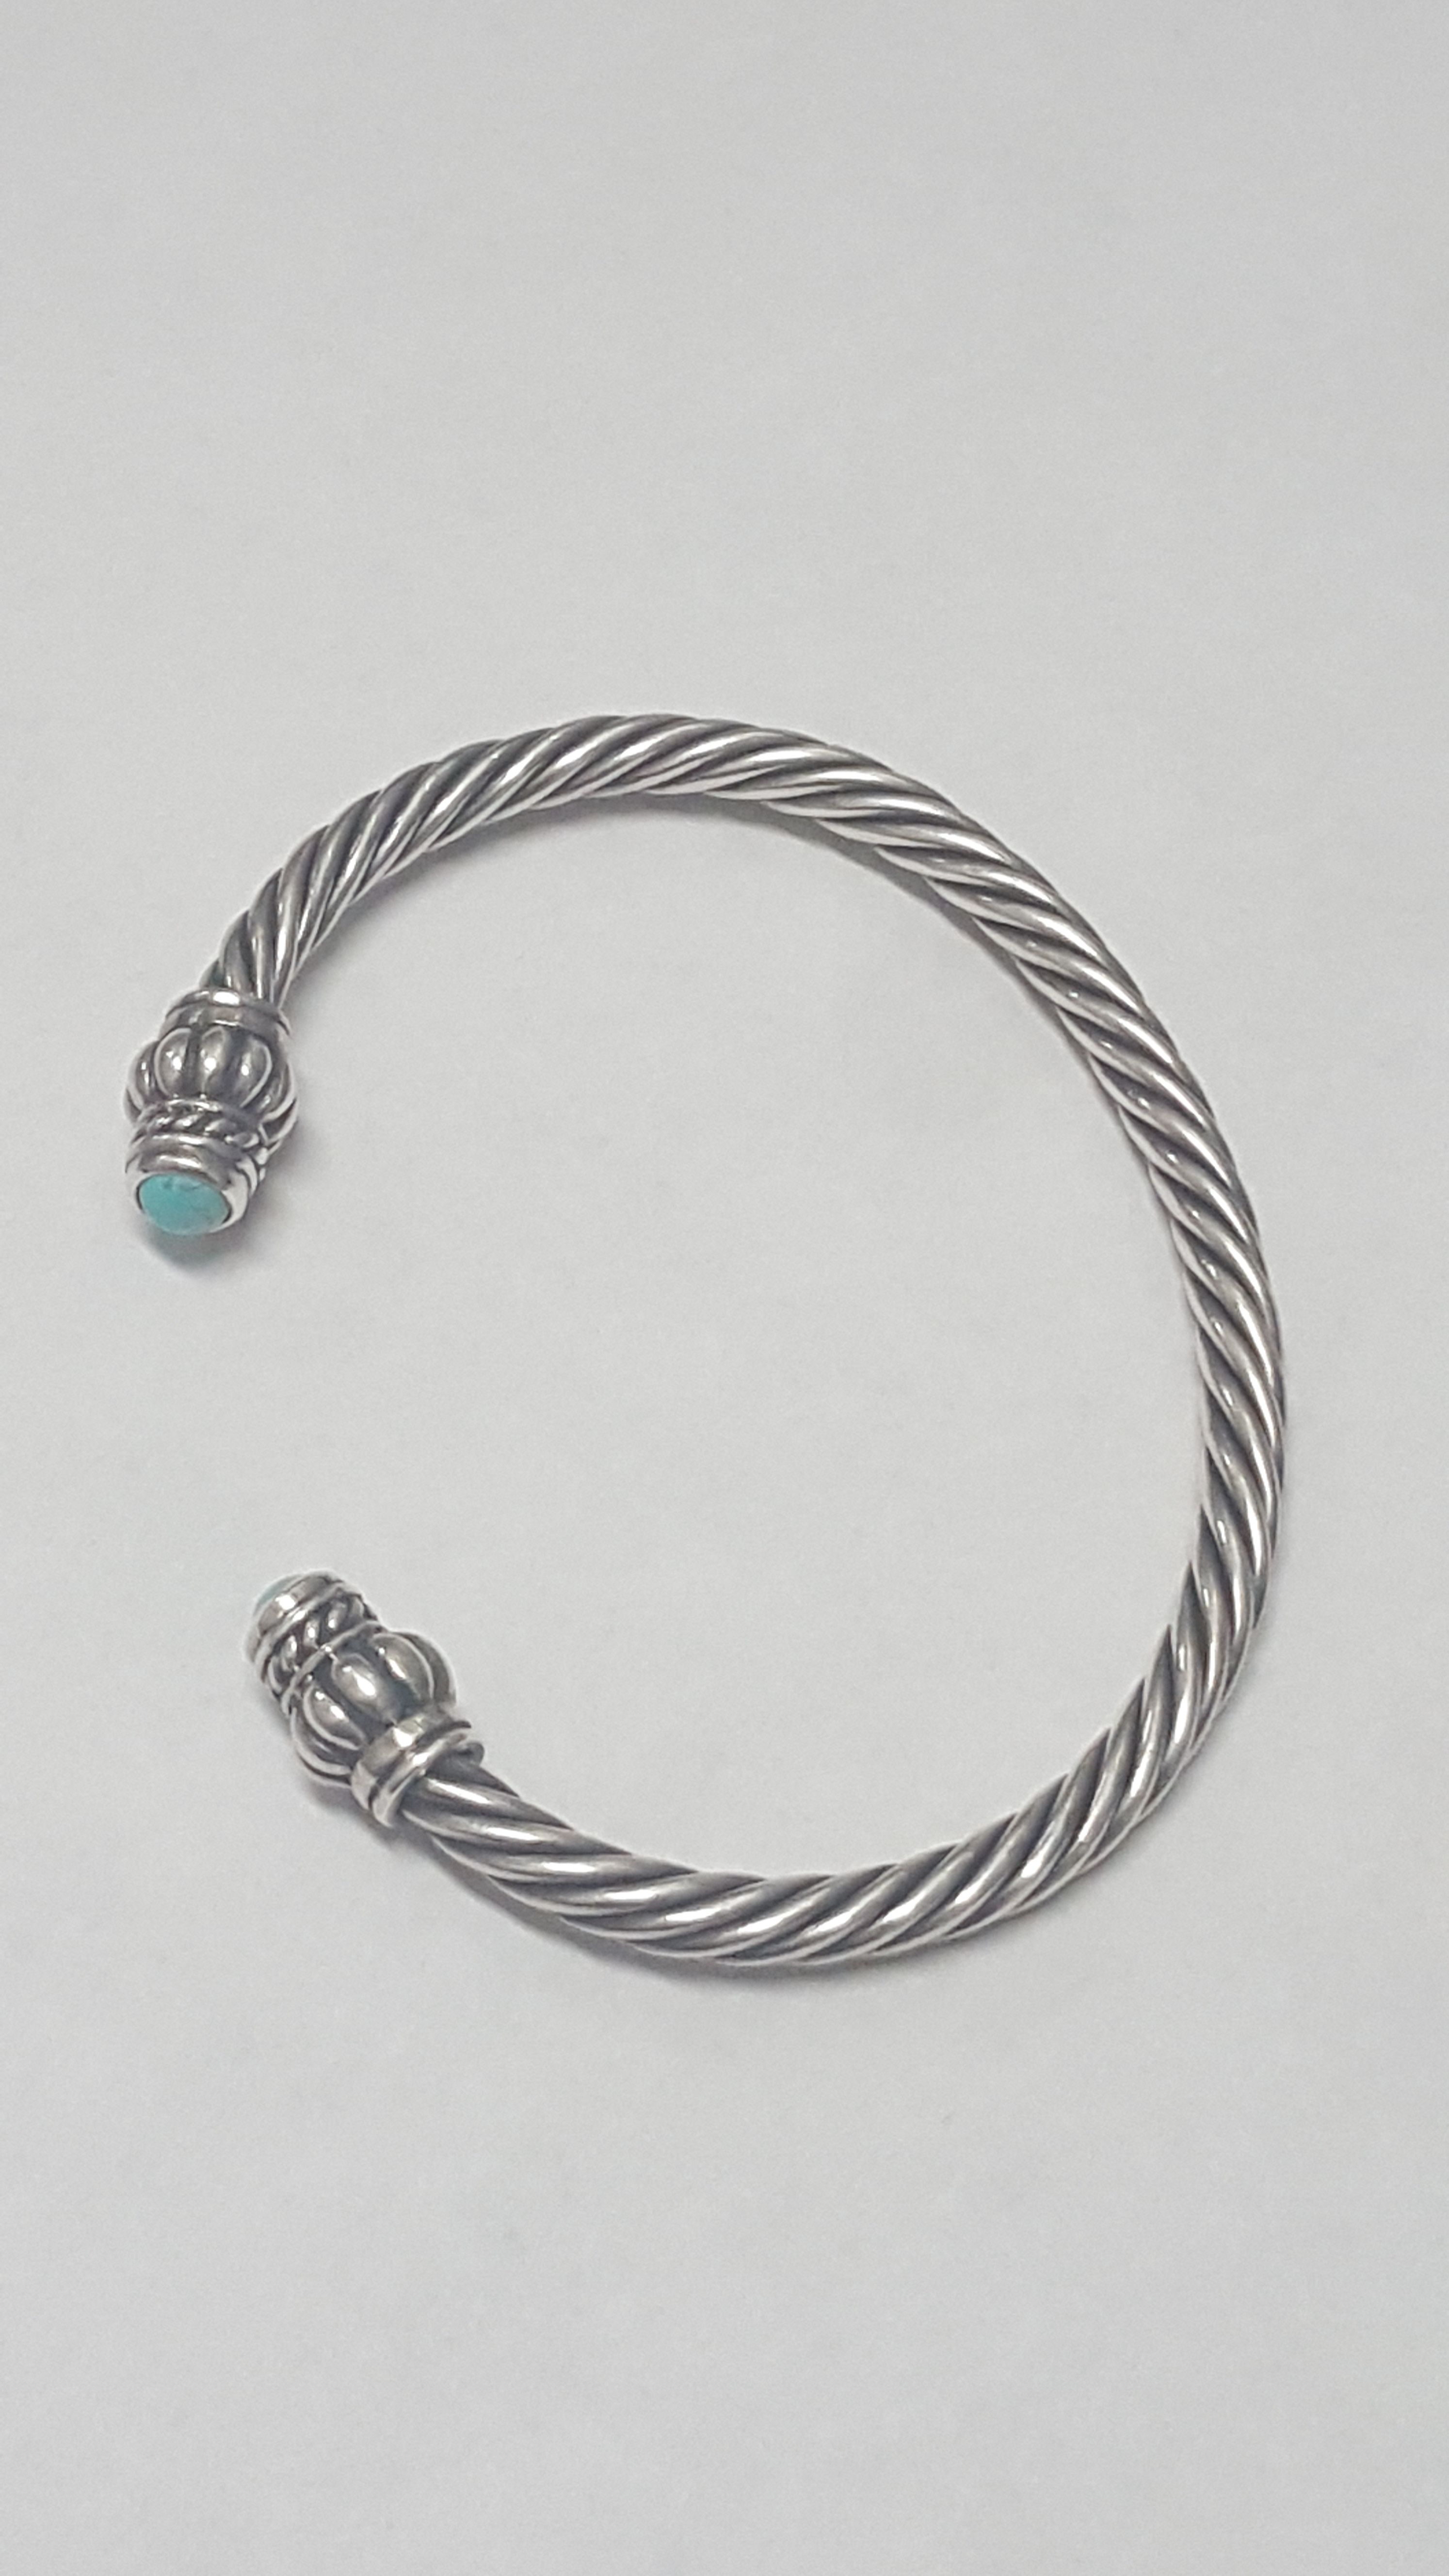 Vintage Sterling Silver and Turquoise Twisted Wire Cuff Bracelet ...